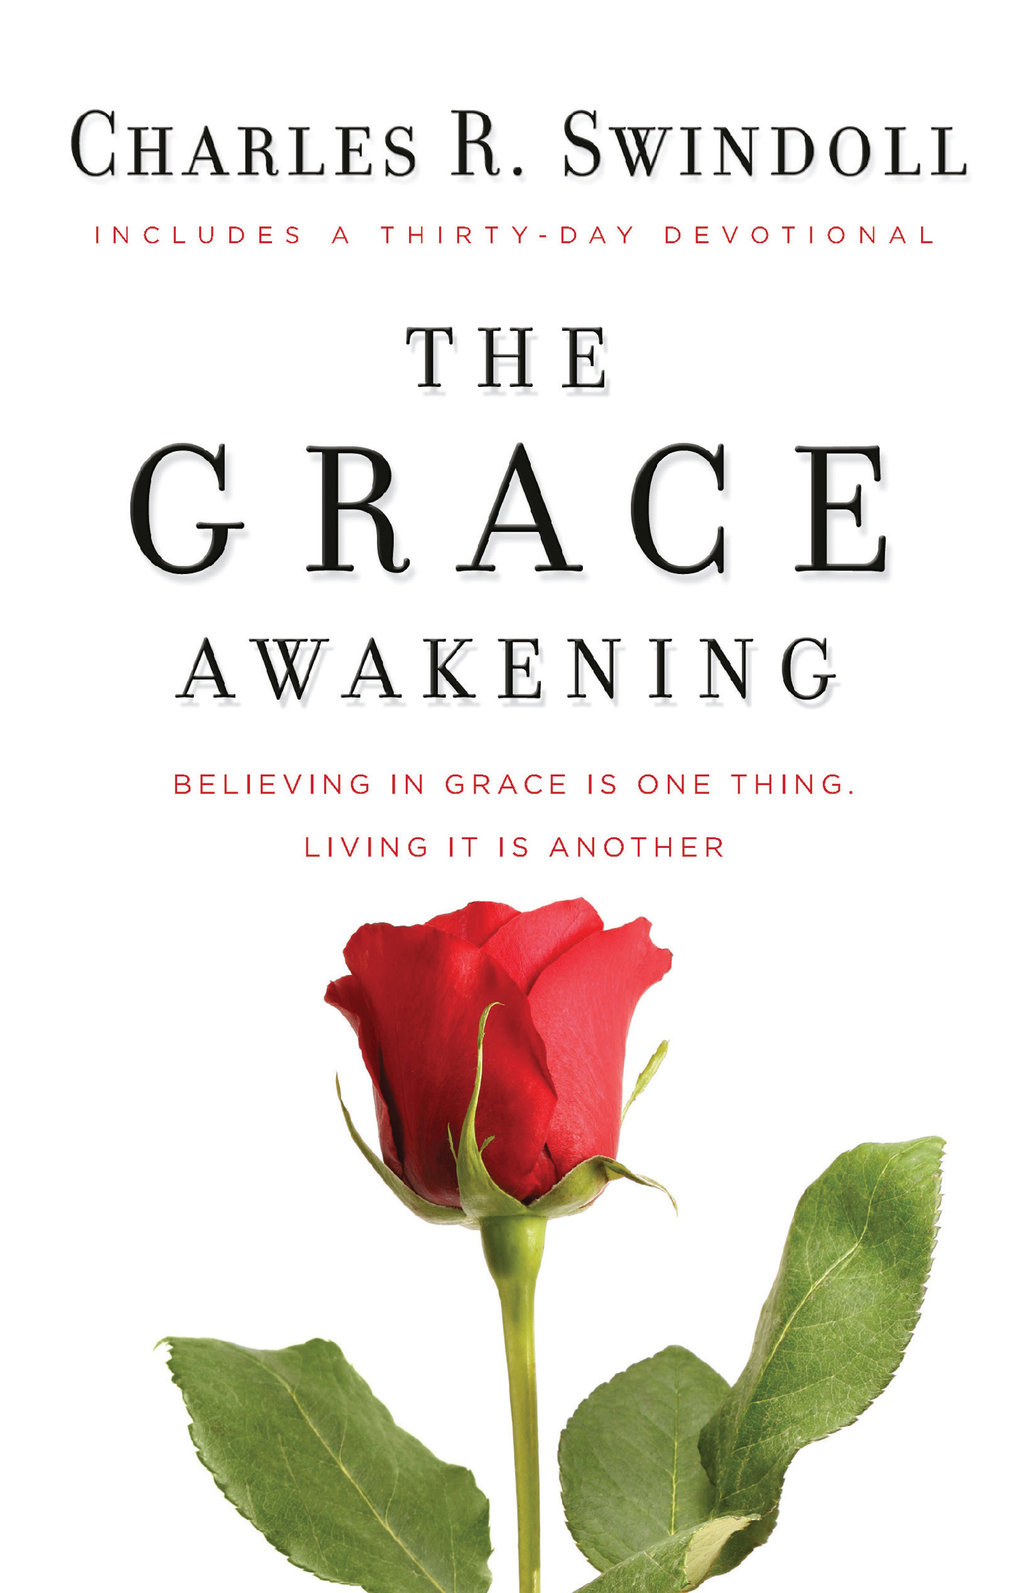 The Grace Awakening Believing in grace is one thing. Living it is another.